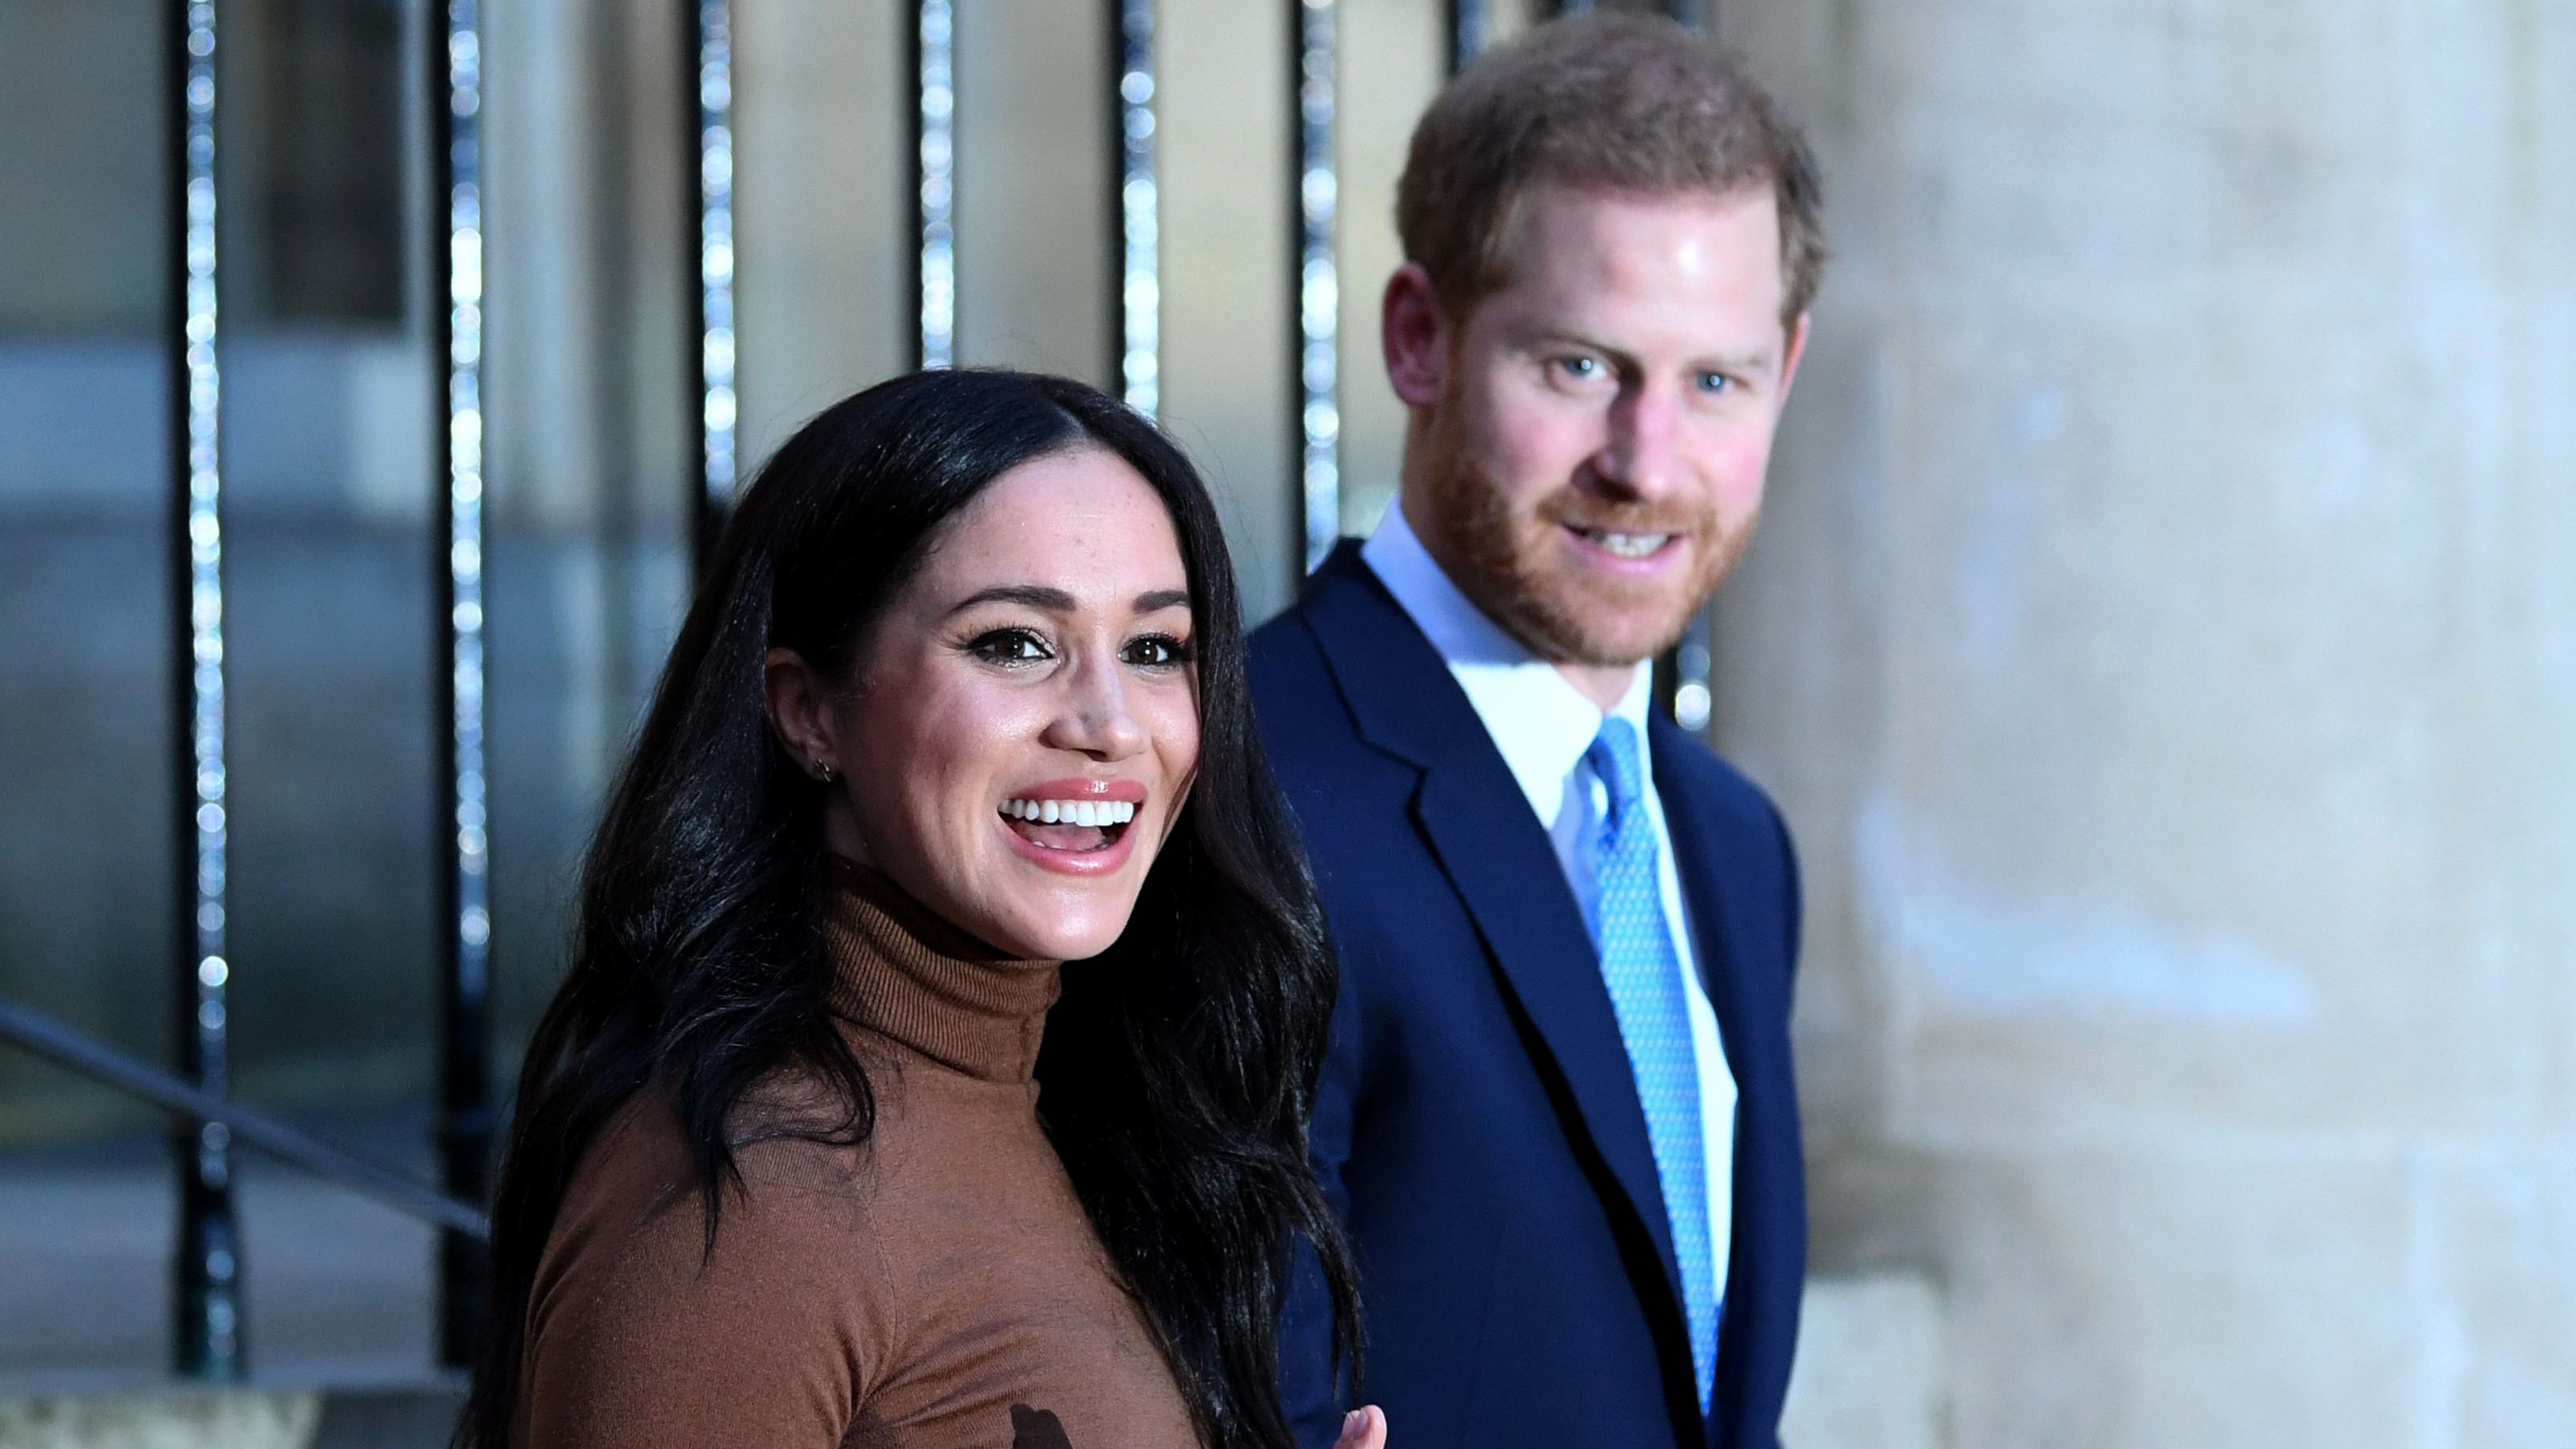 Canadians Sign Petition Against Prince Harry And Meghan Markle